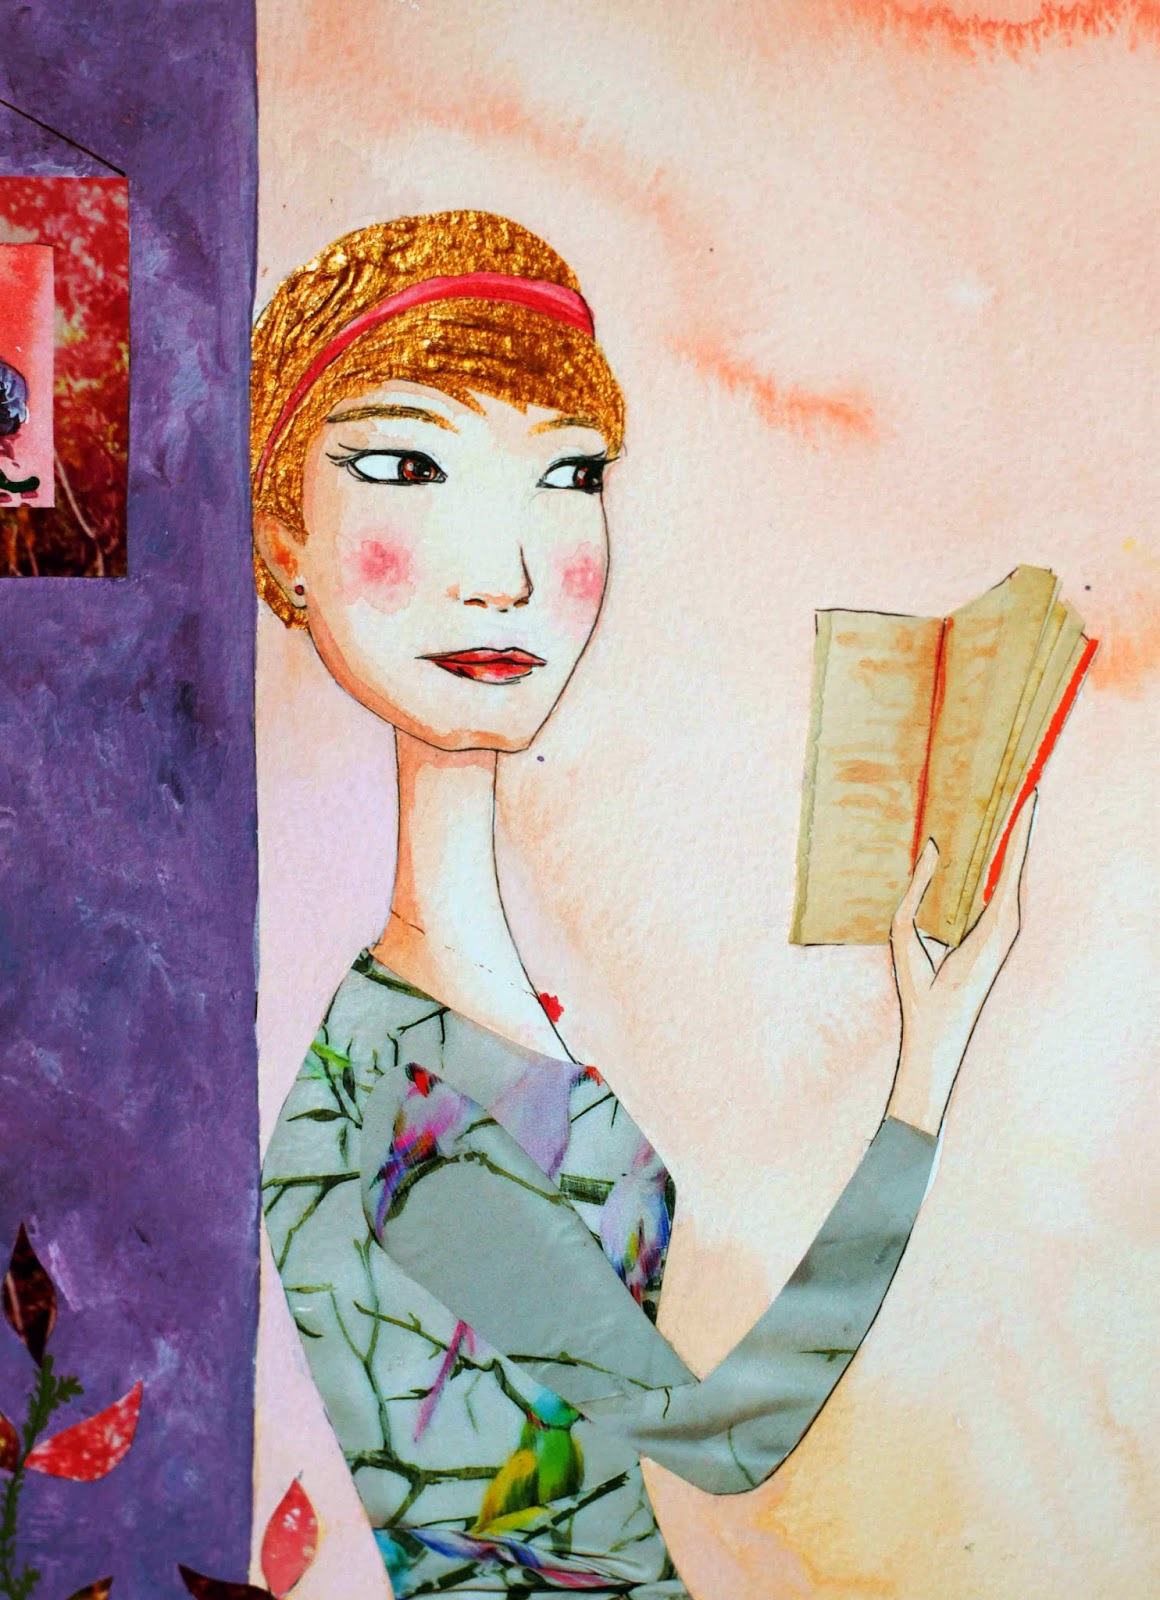 https://www.etsy.com/listing/225300923/original-mixed-media-painting-the-reader?ref=shop_home_active_4